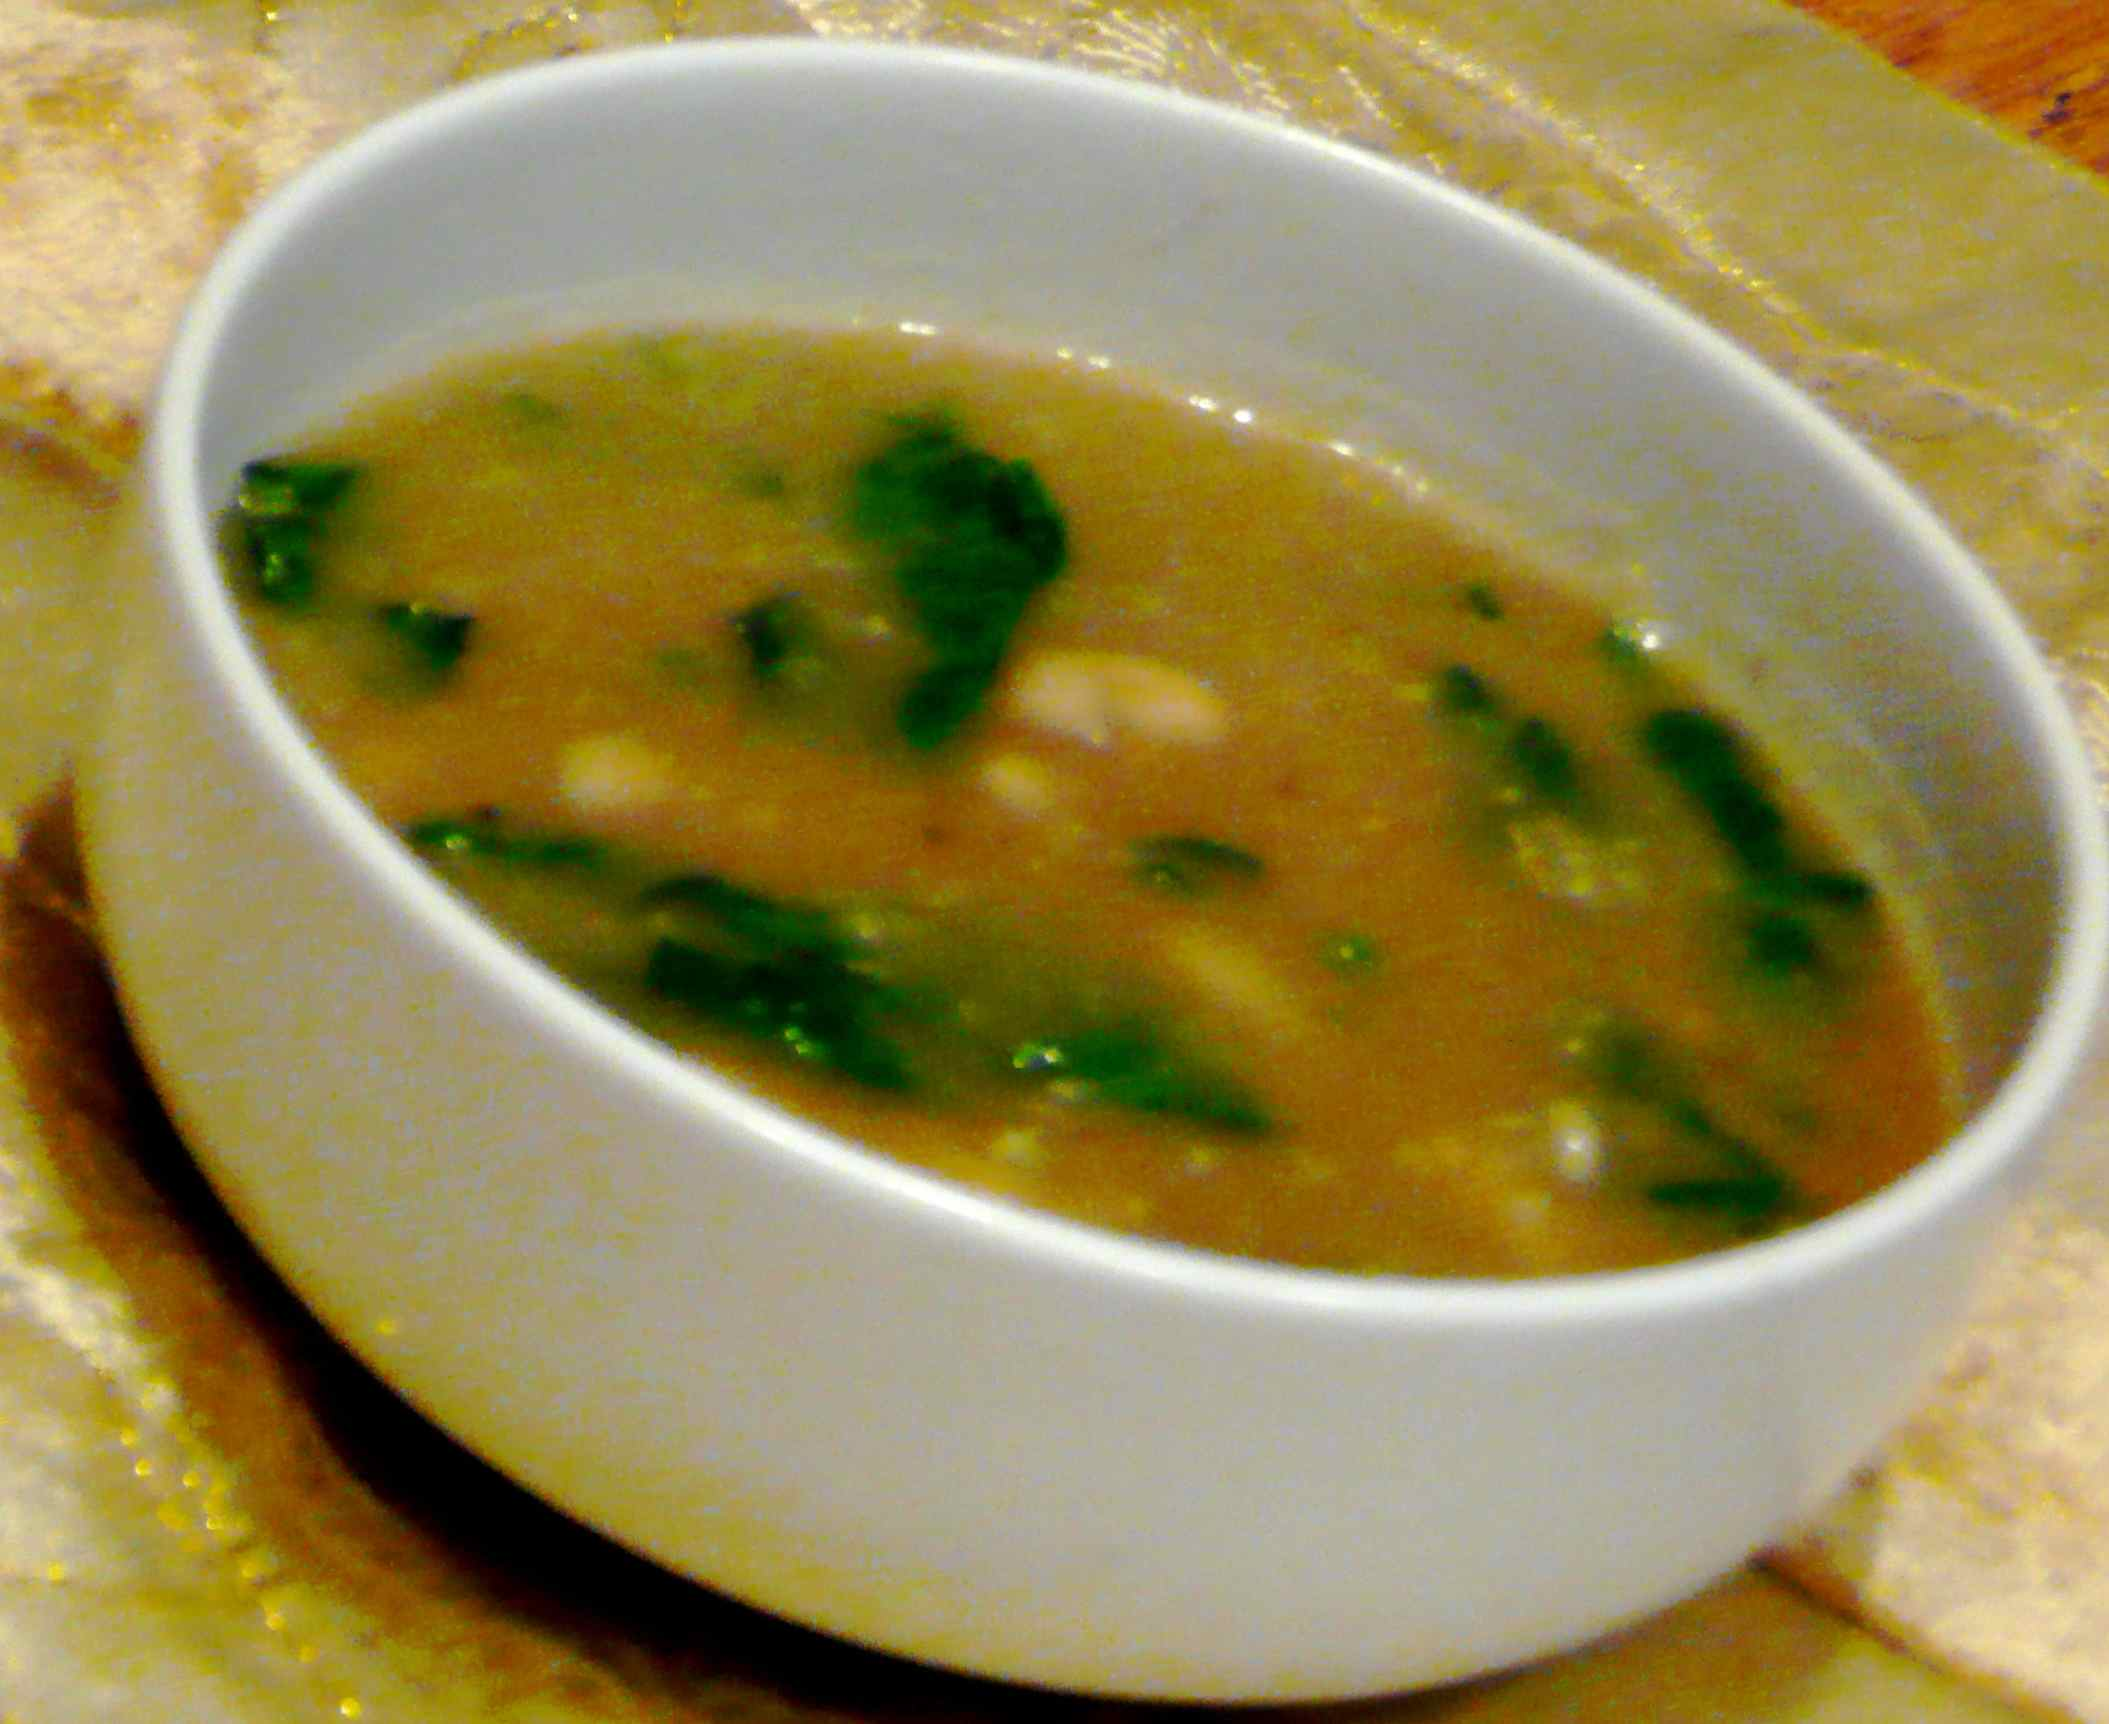 Roasted Eggplant Soup Recipe with Beans and Spinach